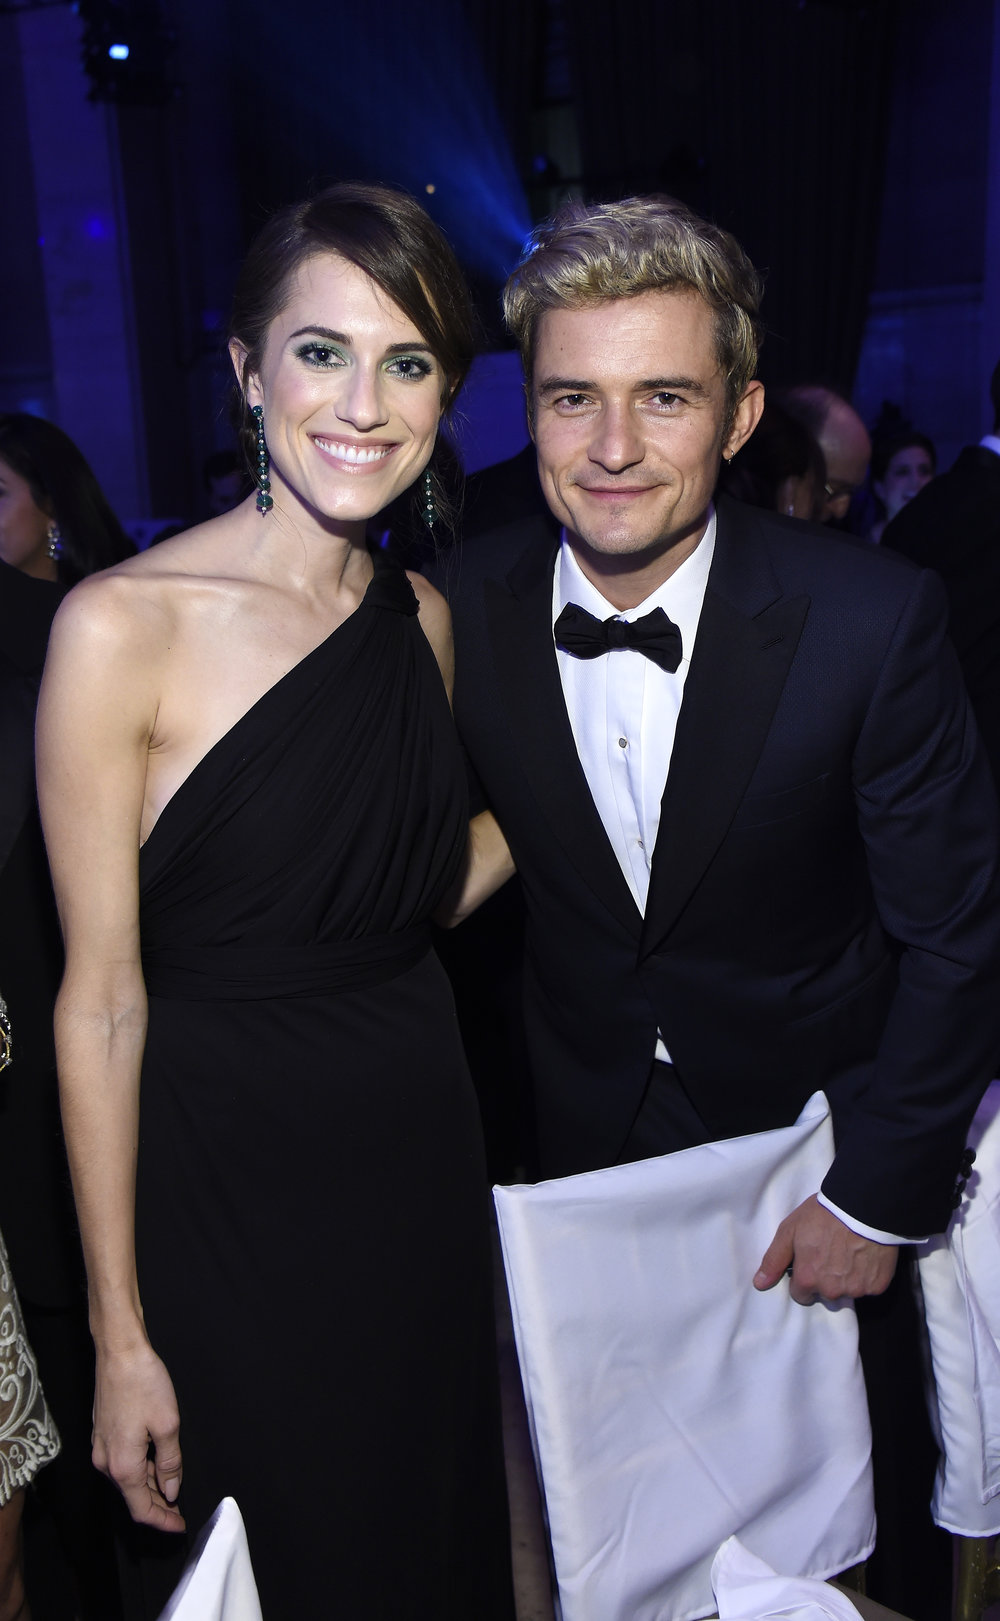 Allison Williams and Orlando Bloom attend the 12th annual UNICEF Snowflake Ball at Cipriani Wall Street on November 29, 2016 in New York City. (Photo by Kevin Mazur/Getty Images for UNICEF )